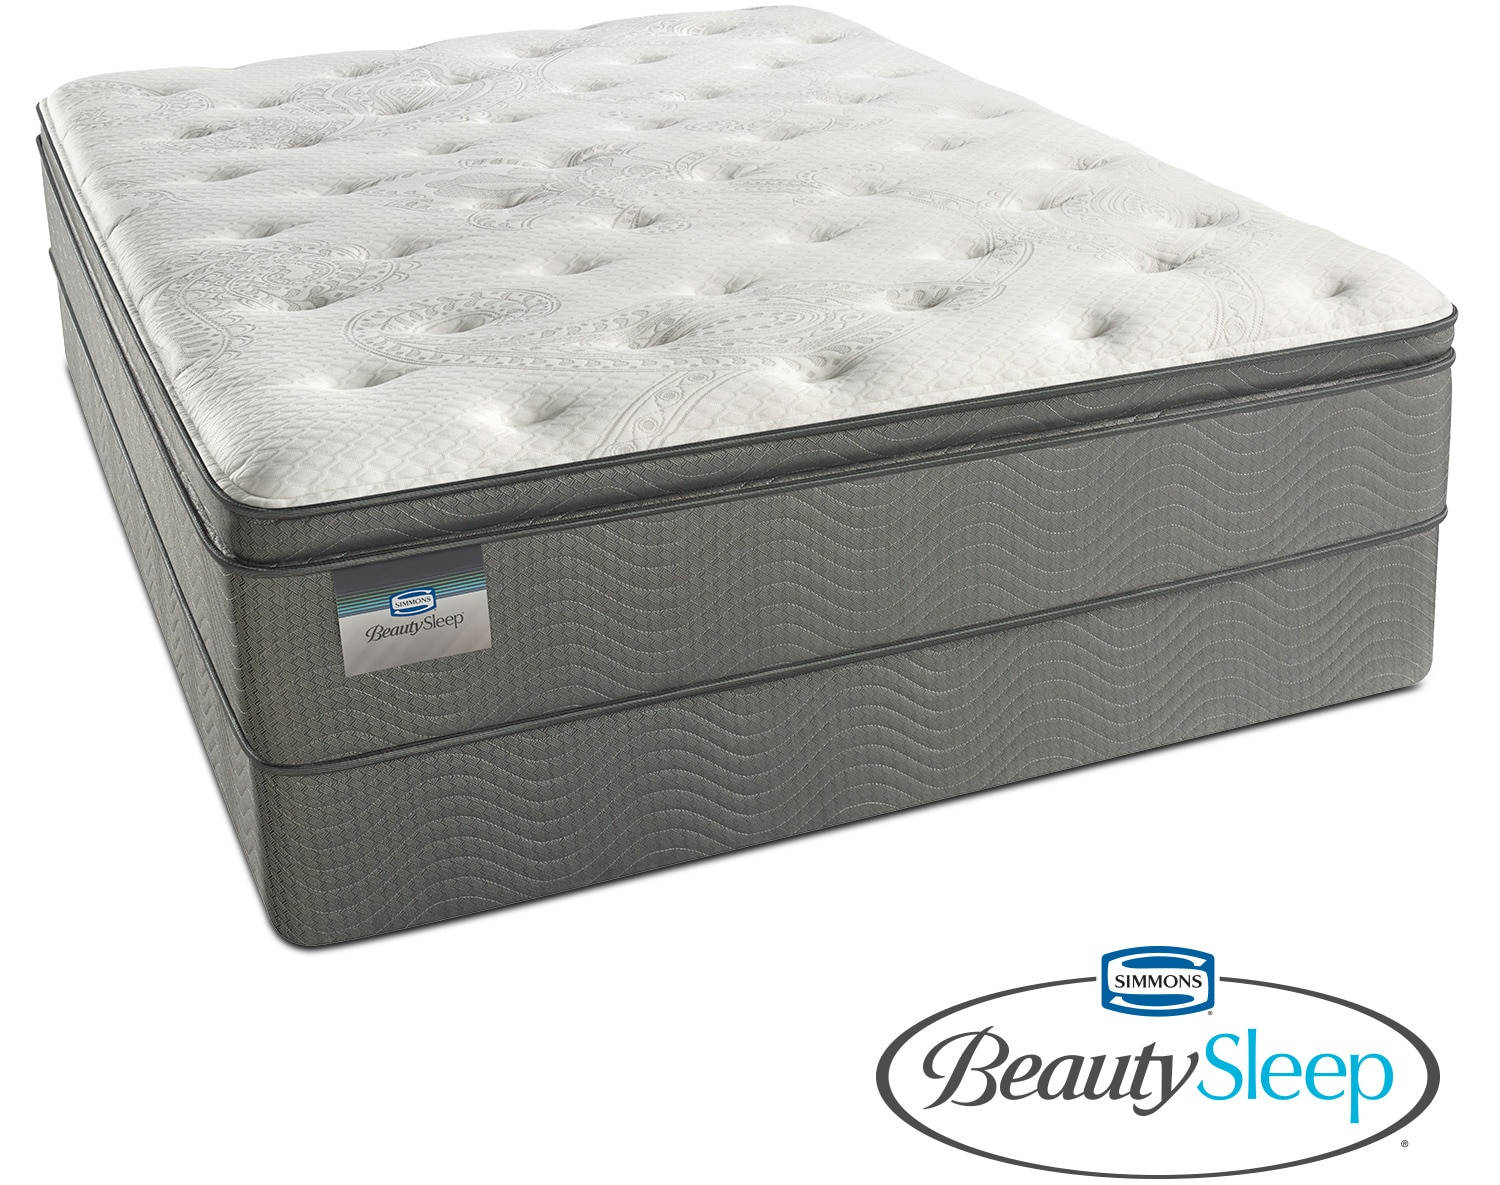 Stags Leap Luxury Firm Pillowtop Full Mattress and Foundation Set